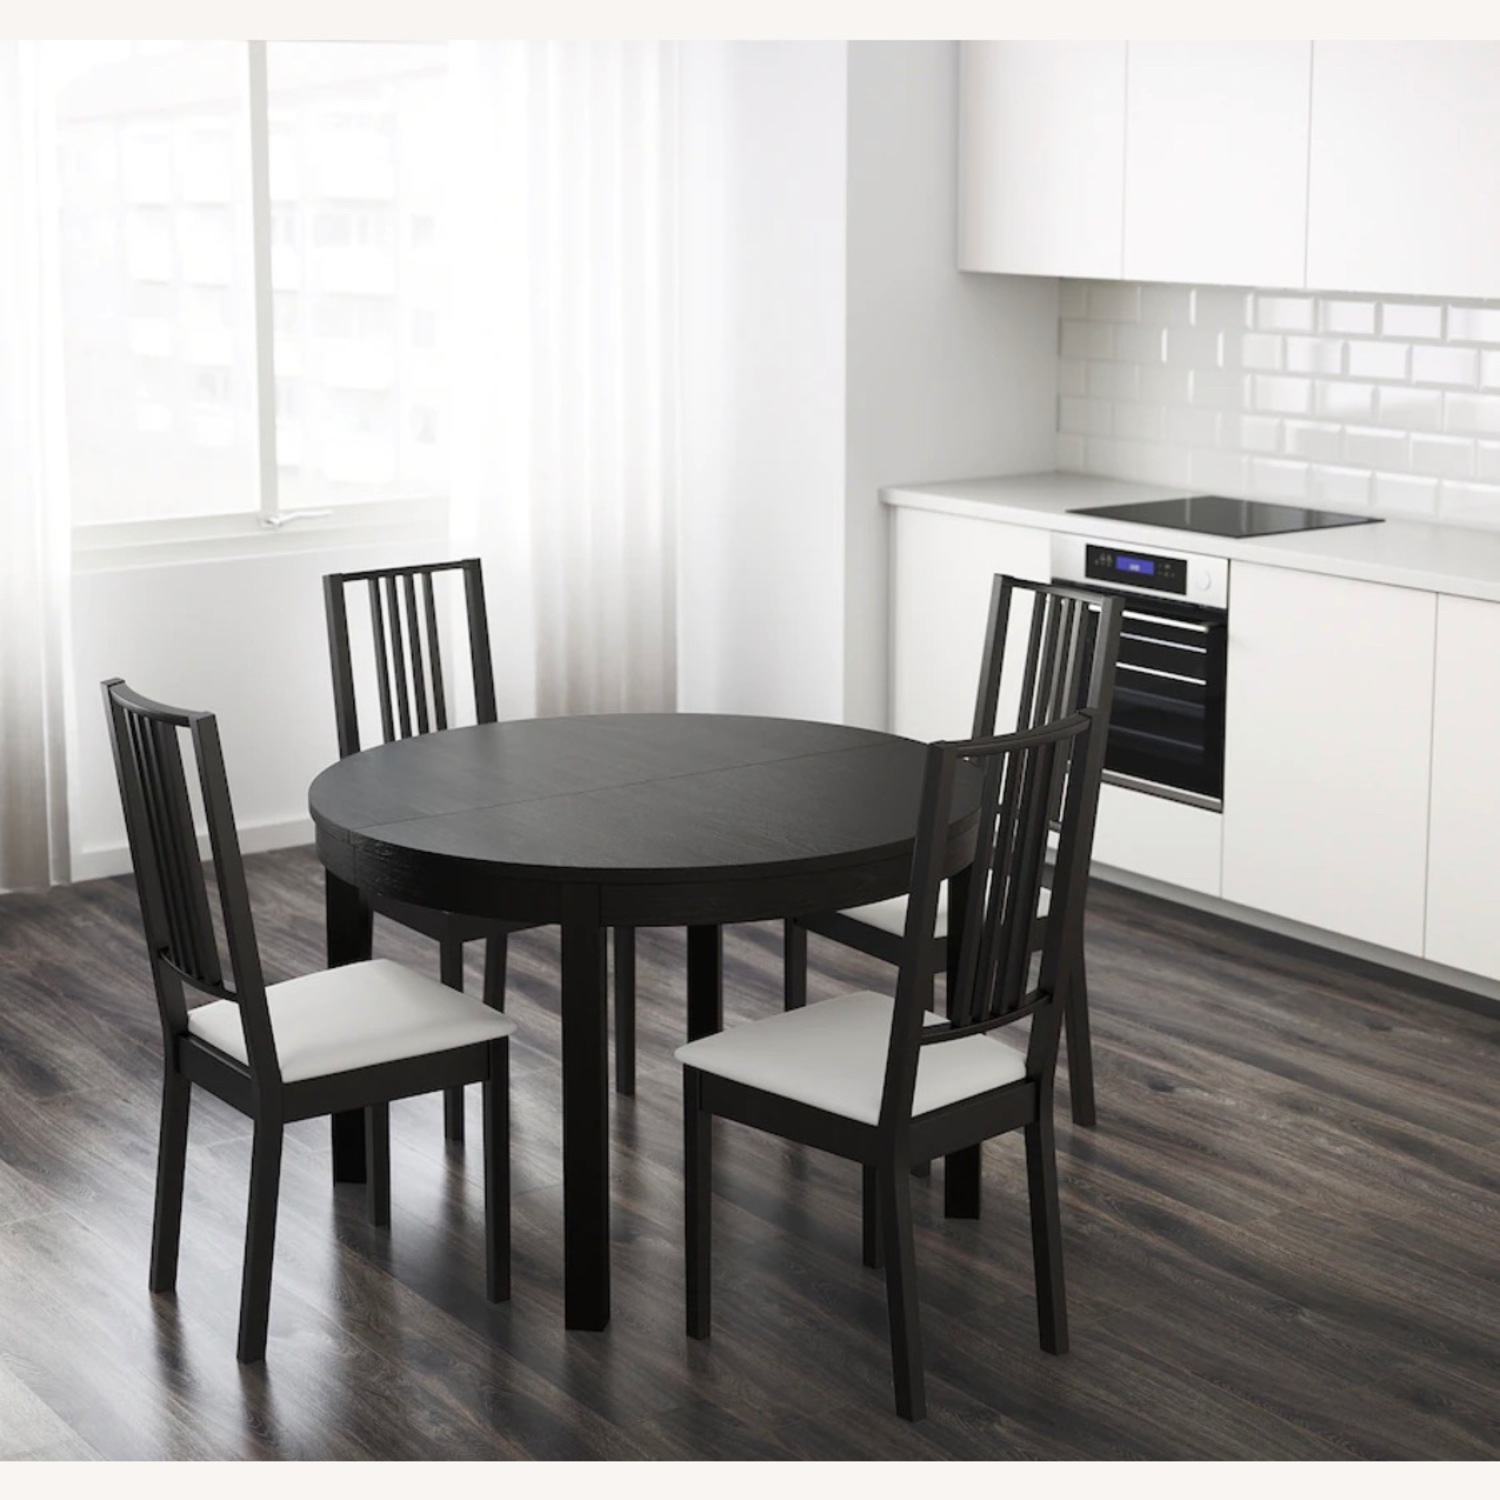 IKEA Dining Set - BJURSTA Table with INGOLF Chairs - image-8